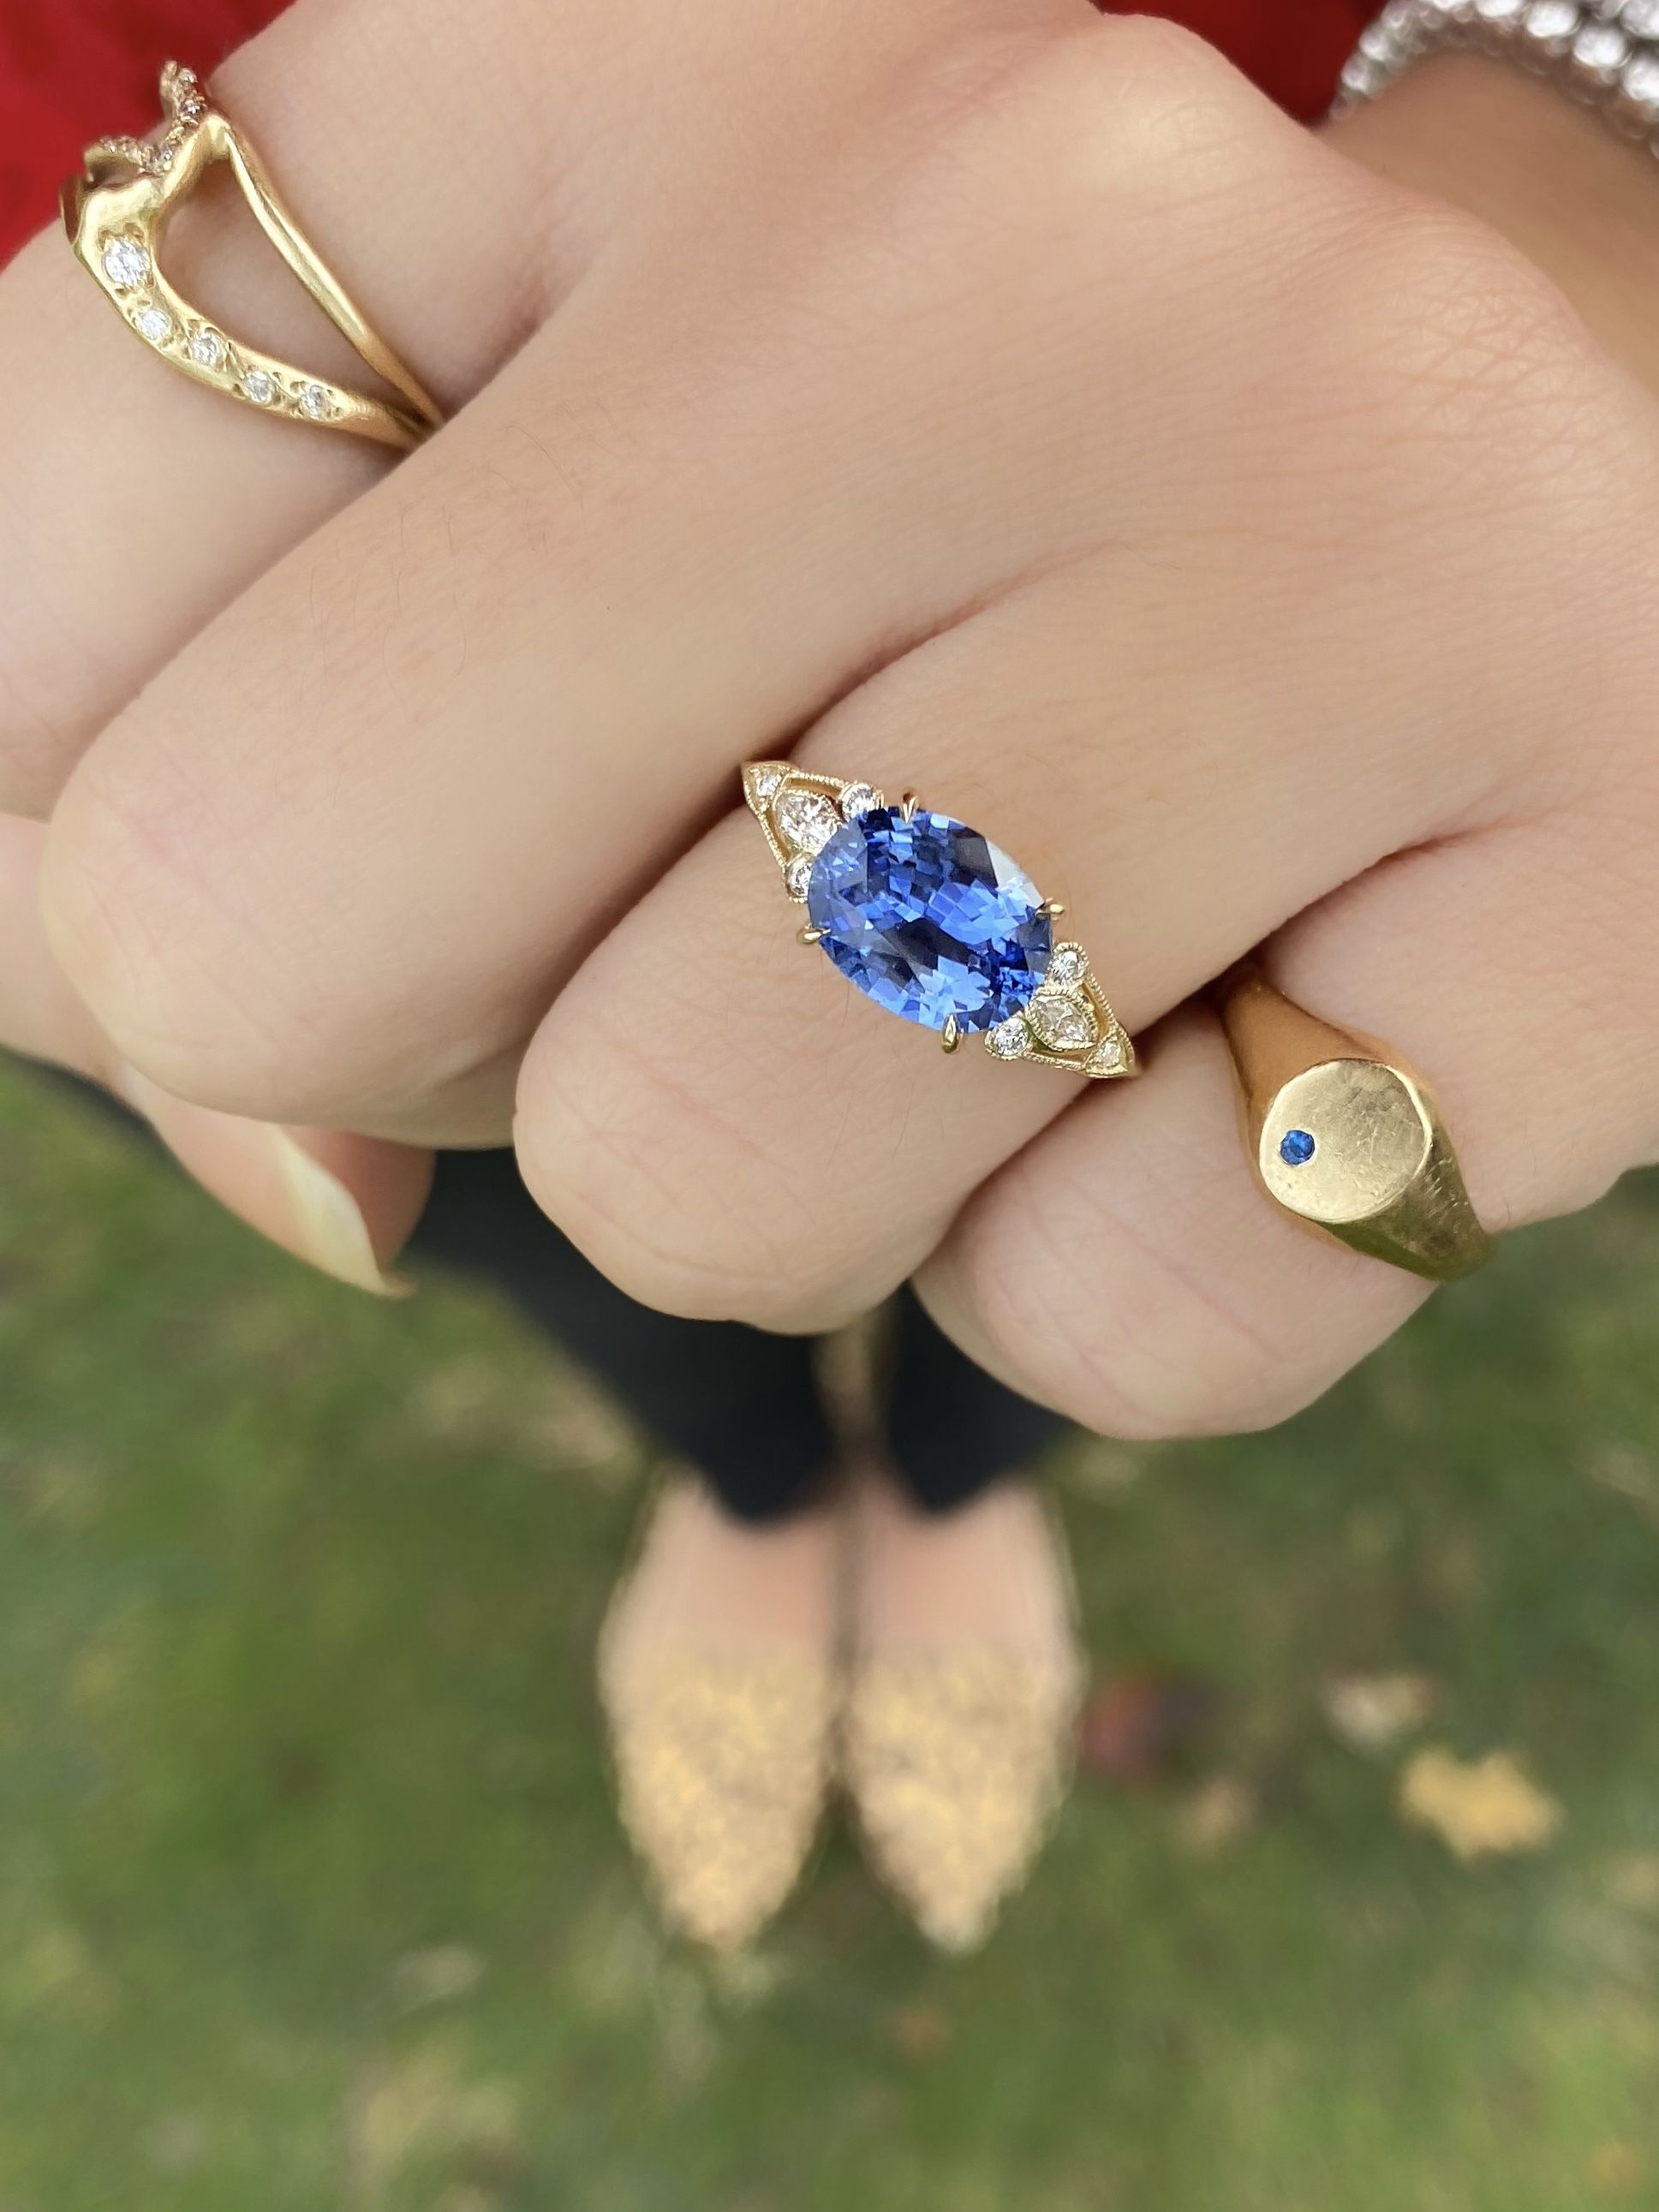 This wedding ring set is absolutely beautiful. The combination of yellow gold, diamonds, and a stunning sapphire is a classic and timeless look. This set also brings together the vintage look of Lippy and the unique nature inspired sculptural design of Razel. See these two rings in more detail on our website! #kenanddanadesign #customdesign #nycjeweler #weddingringset #vintageinspiredengagementring #diamondweddingringset #splitshank #vintageinspired #sapphire #ovalsapphire #sculptural #nature